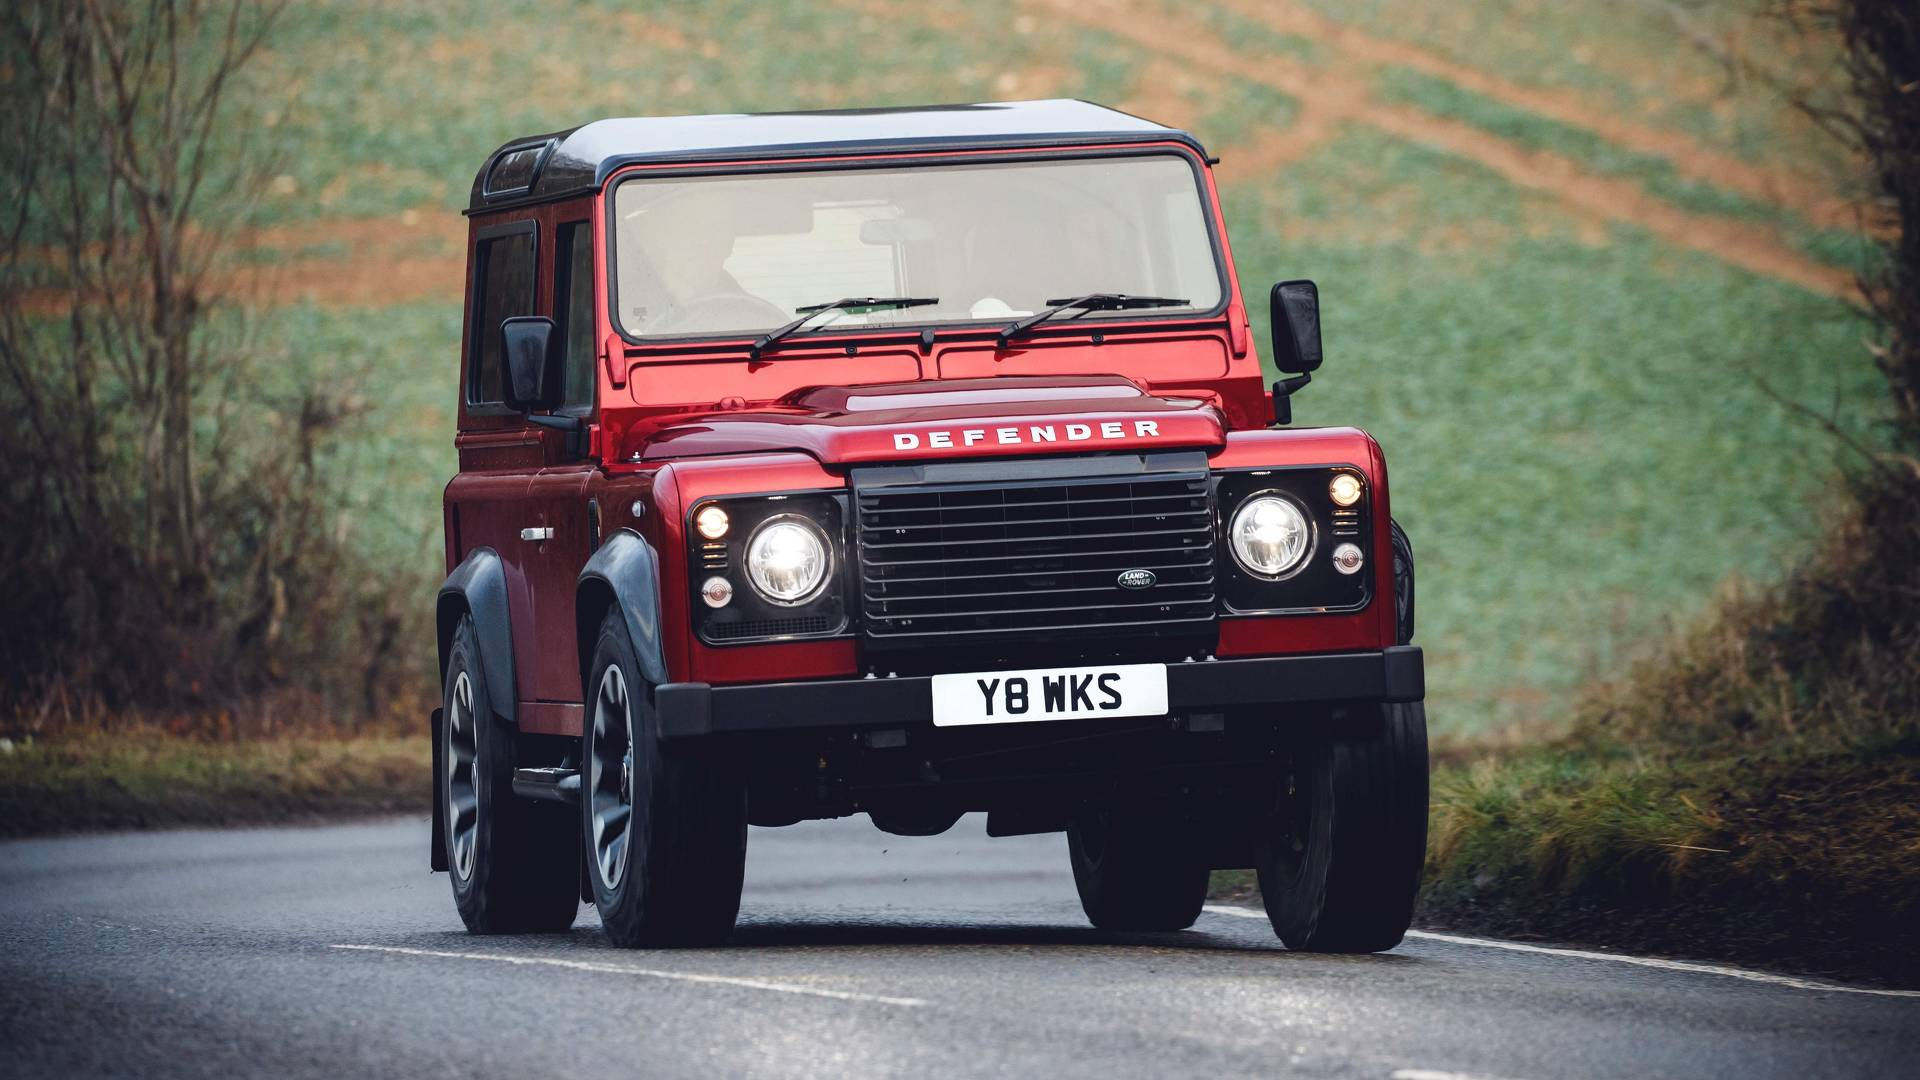 to sale autoclassics land news com defender landrover build rovers old classic posts rover for